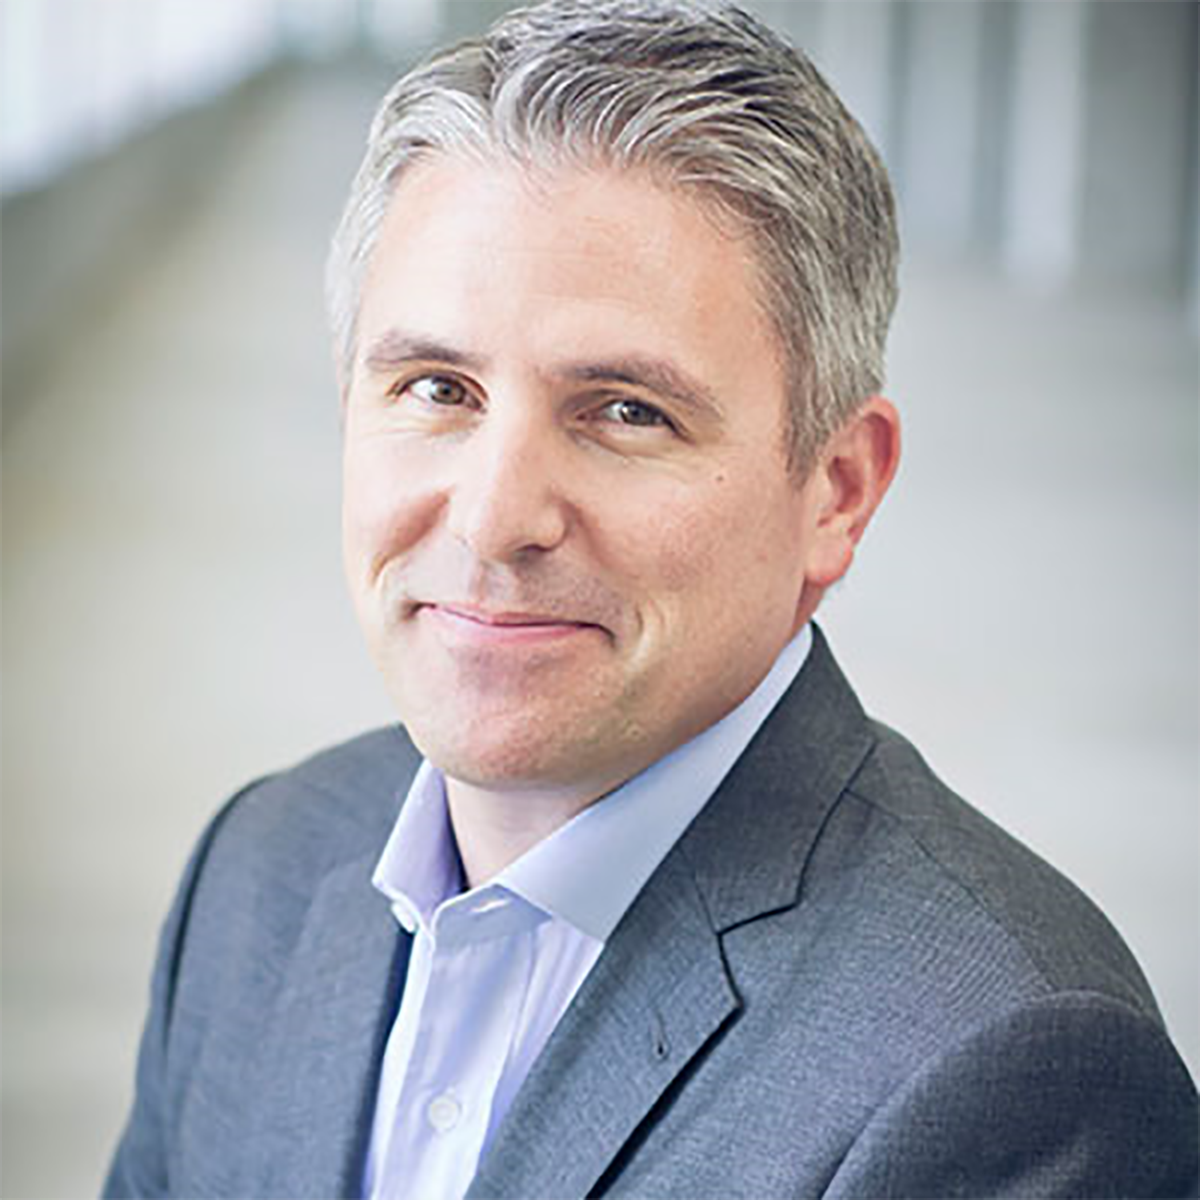 mHUB Announces Appointment of Kevin Willer, from Chicago Ventures, as Vice Chairman of the Board